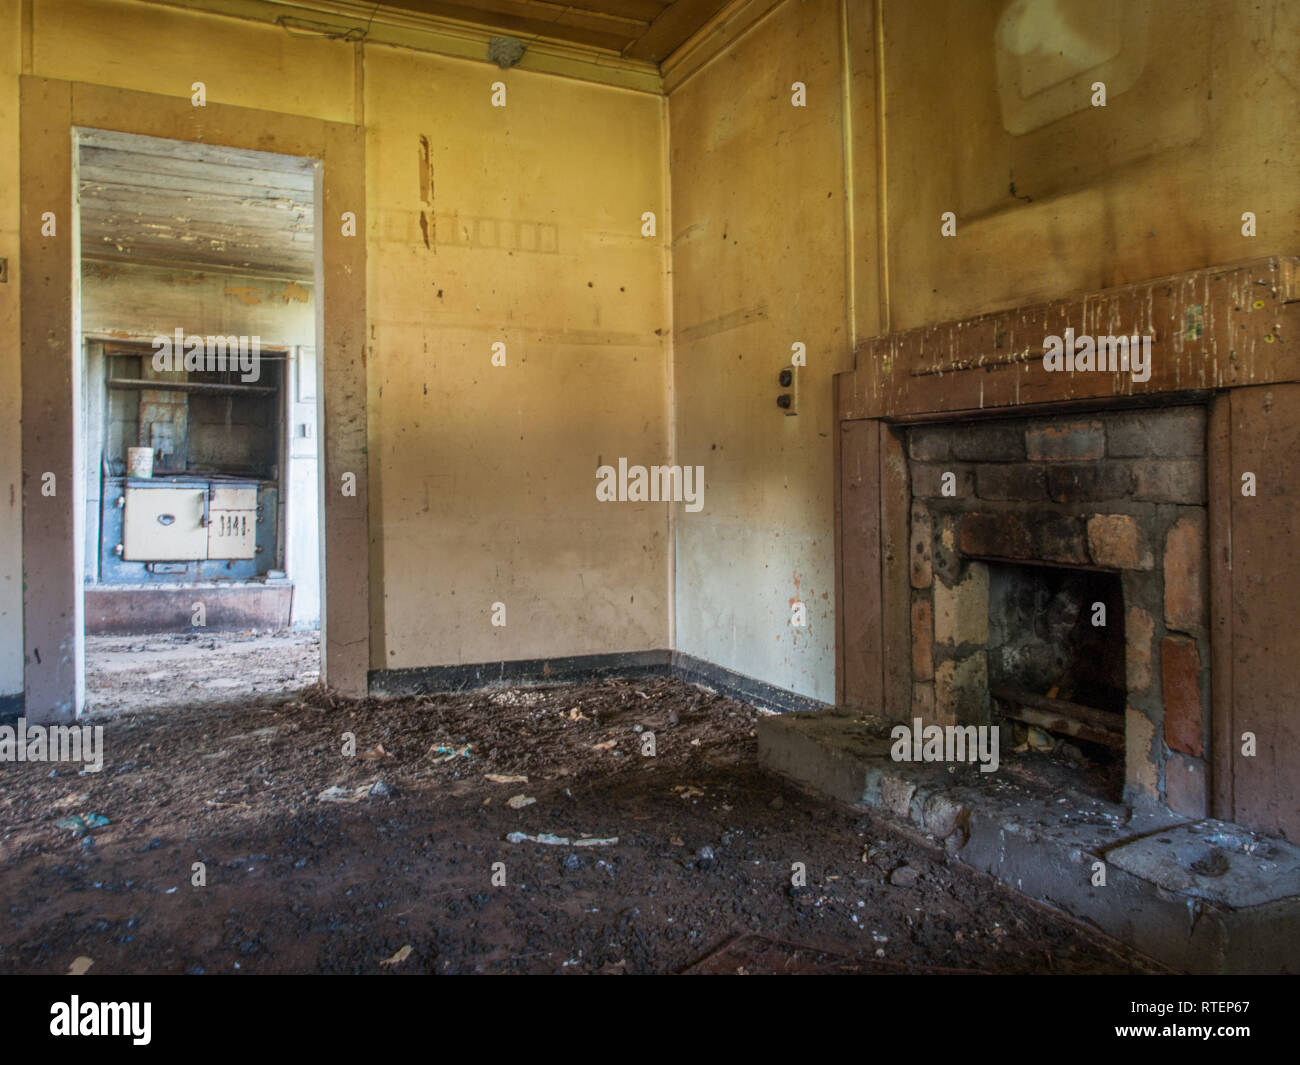 Fire place and wood stove, abandoned house, Endeans Mill, Waimiha, Ongarue, King Country, New Zealand - Stock Image